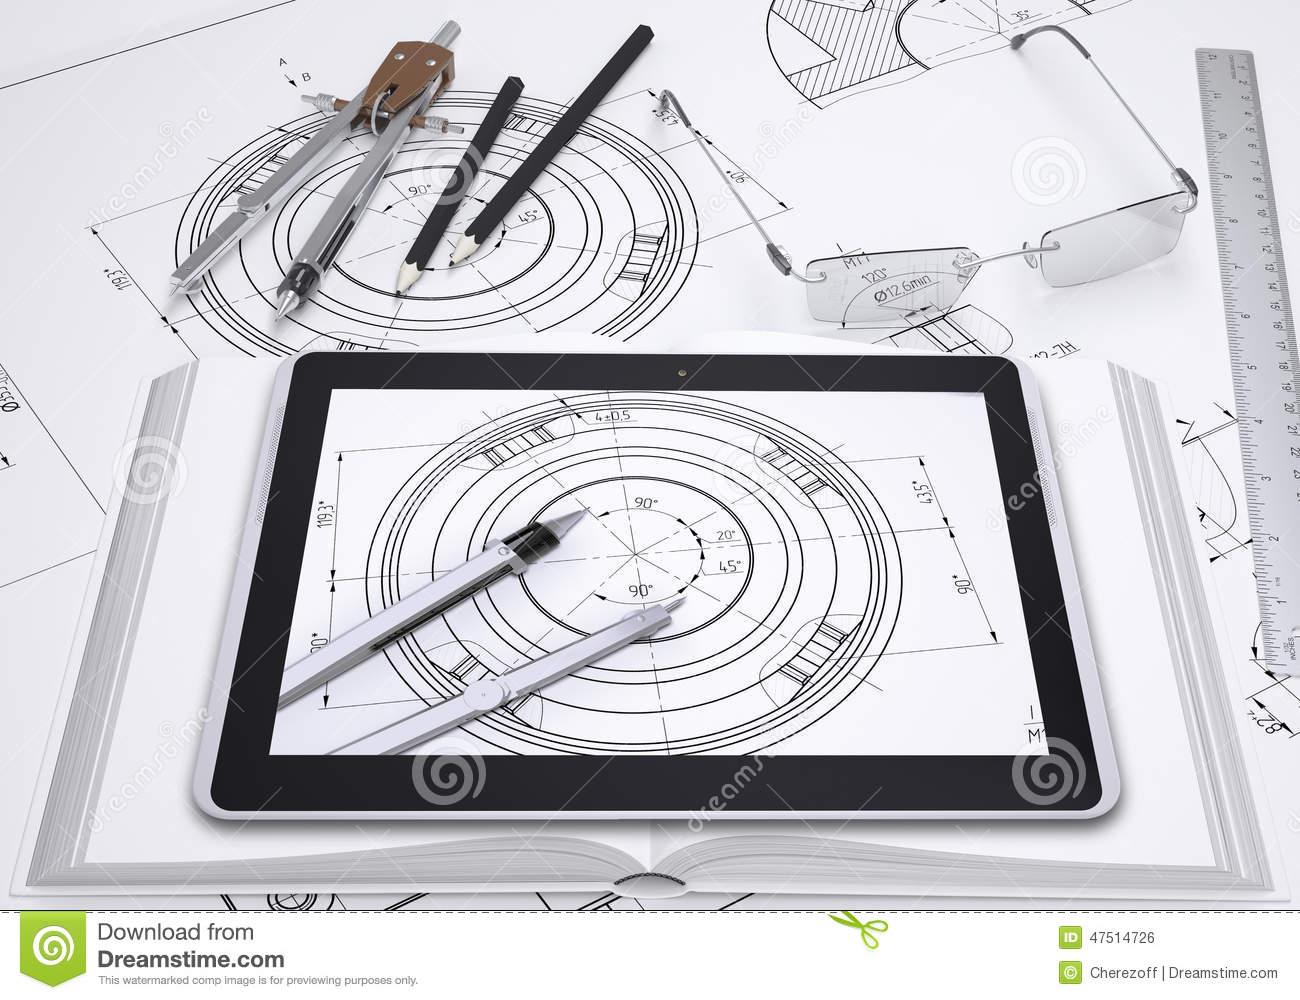 Tablet pc some draftsmans instruments and stock photo image of download comp malvernweather Images